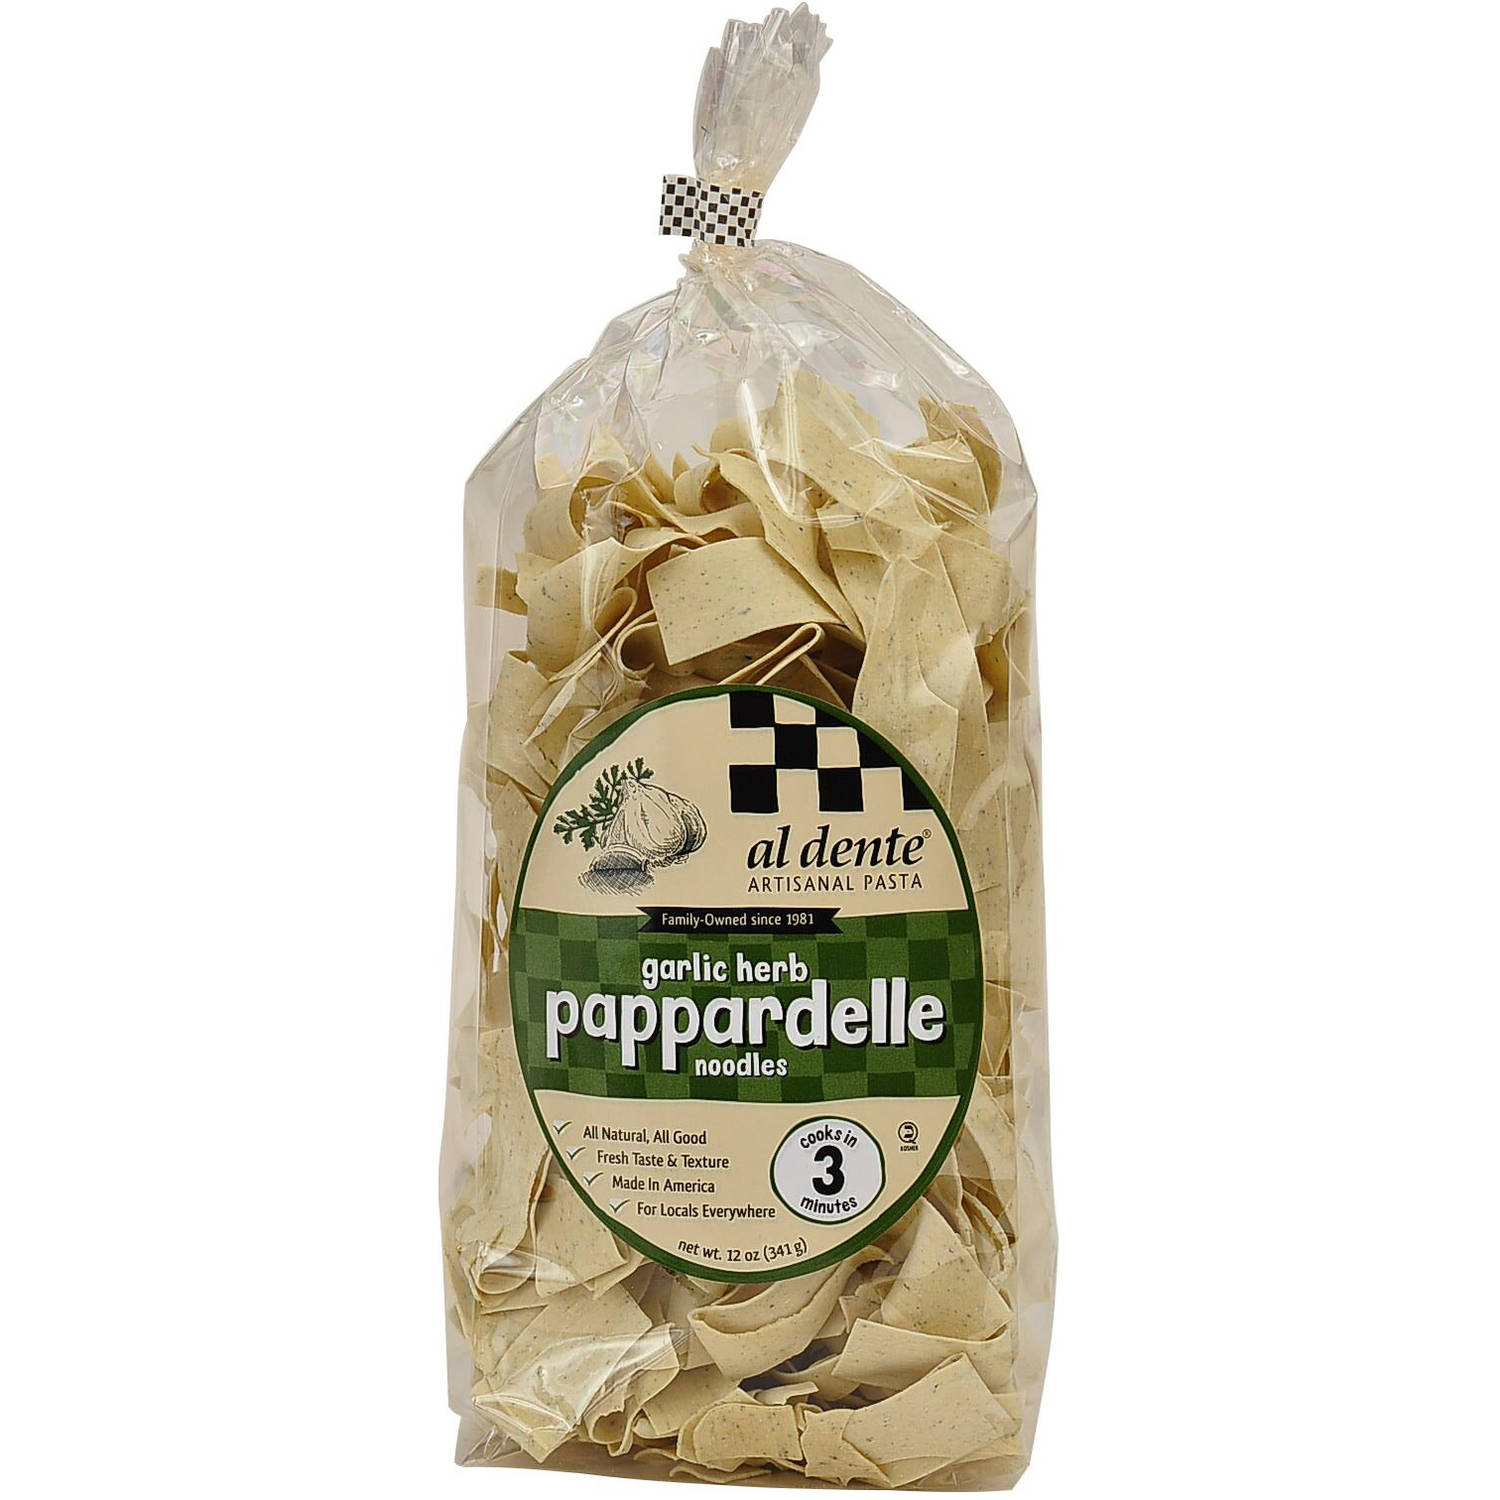 Al Dente Pasta Garlic Herb Pappardelle Noodles, 12 oz (Pack of 6) by Generic